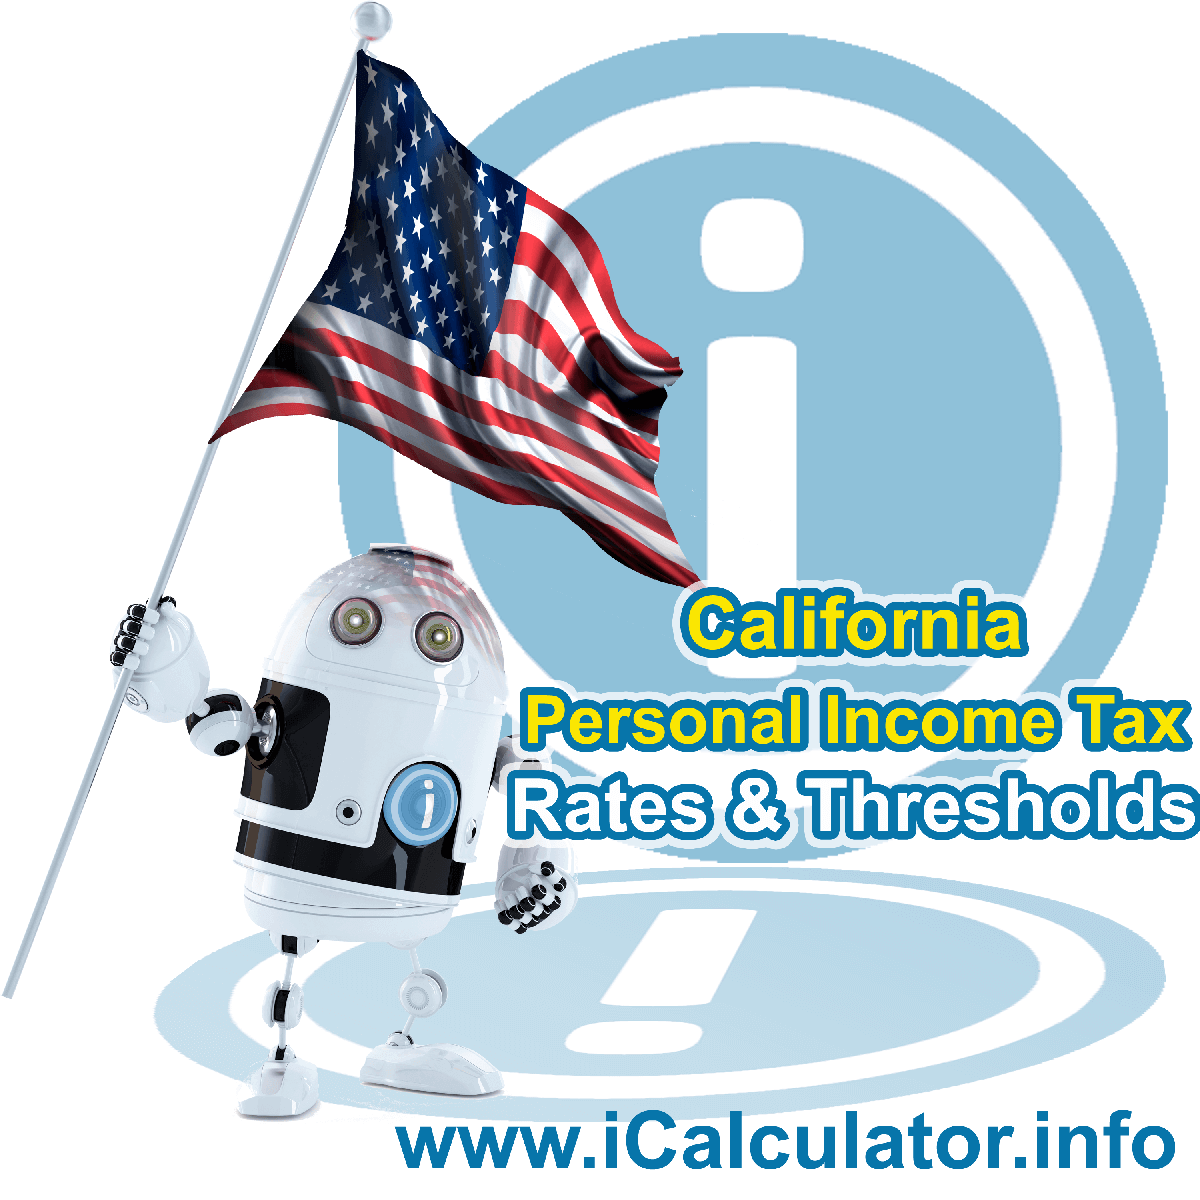 California State Tax Tables 2017. This image displays details of the California State Tax Tables for the 2017 tax return year which is provided in support of the 2017 US Tax Calculator